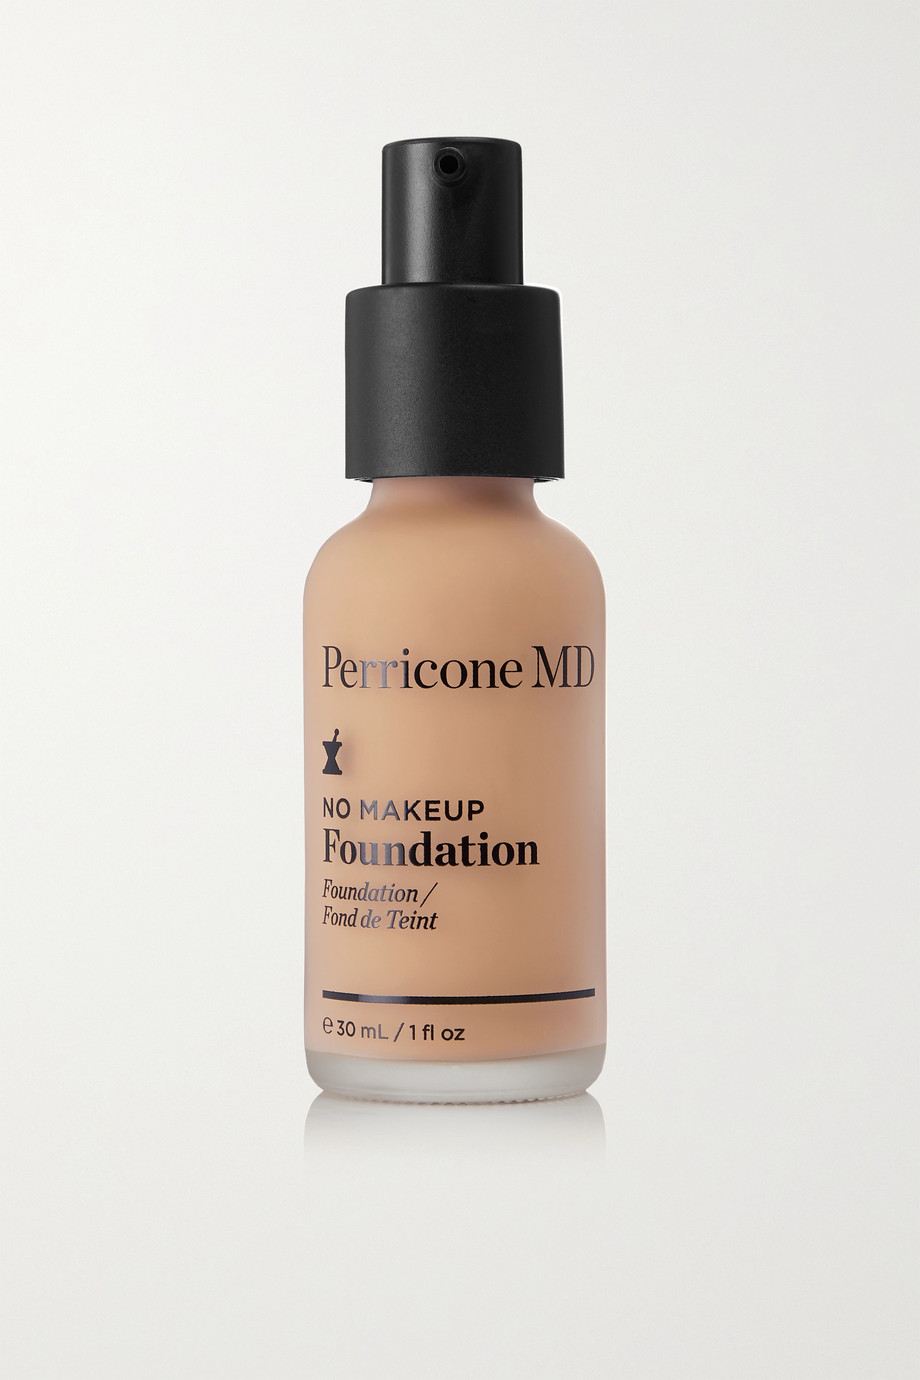 Perricone MD No Makeup Foundation Broad Spectrum SPF20 - Buff, 30ml